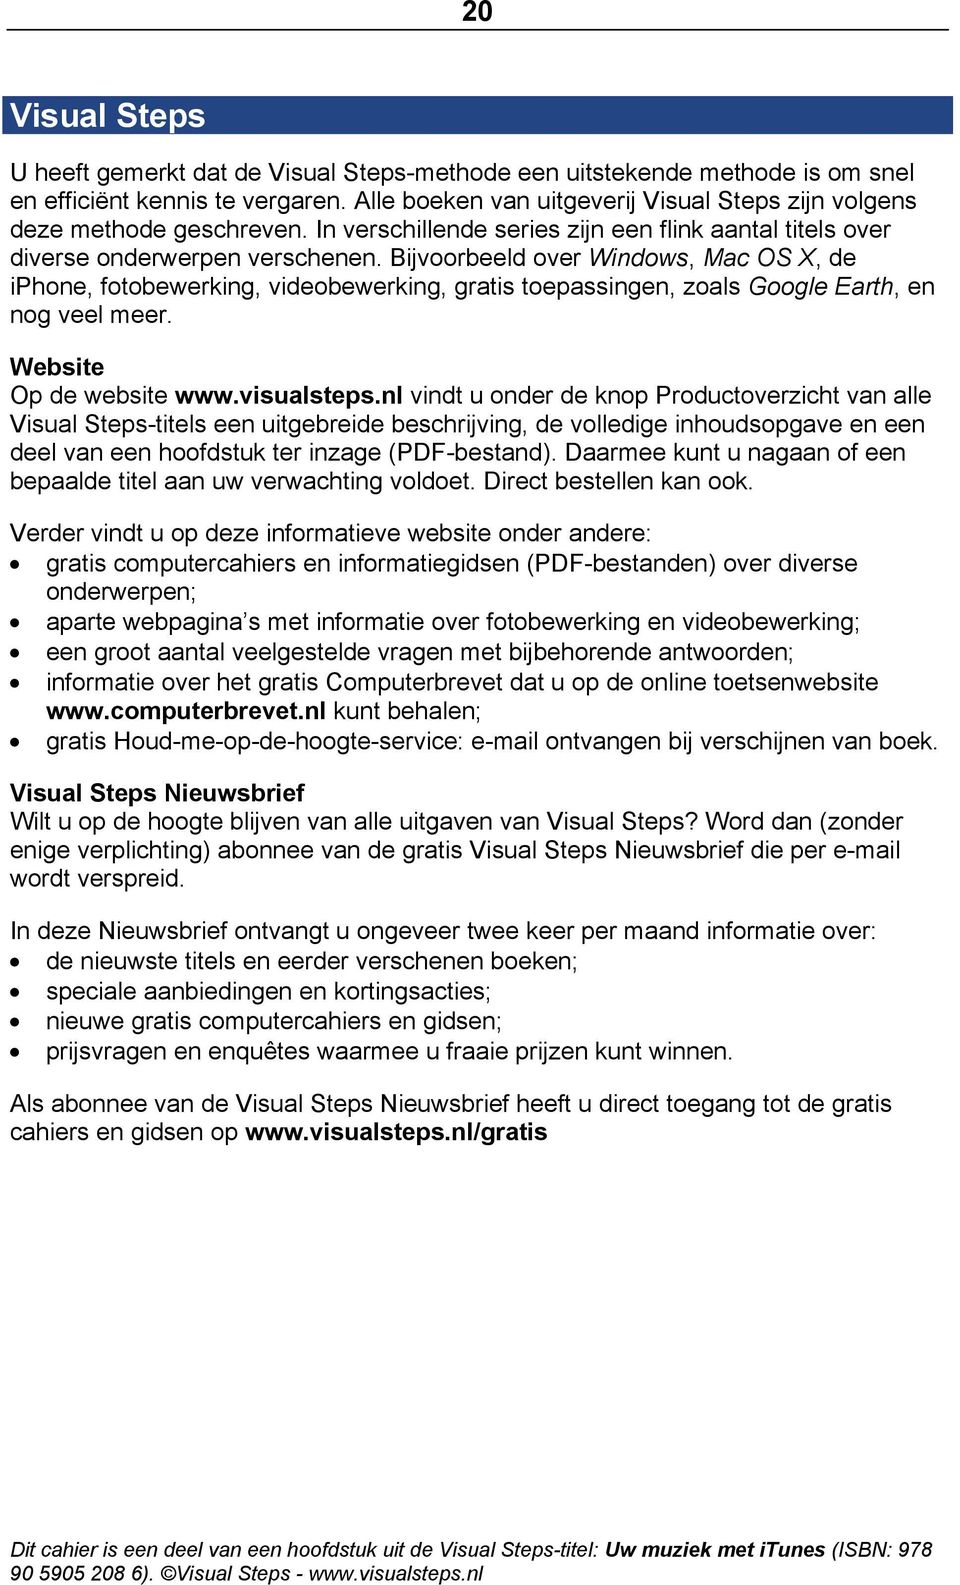 Bijvoorbeeld over Windows, Mac OS X, de iphone, fotobewerking, videobewerking, gratis toepassingen, zoals Google Earth, en nog veel meer. Website Op de website www.visualsteps.